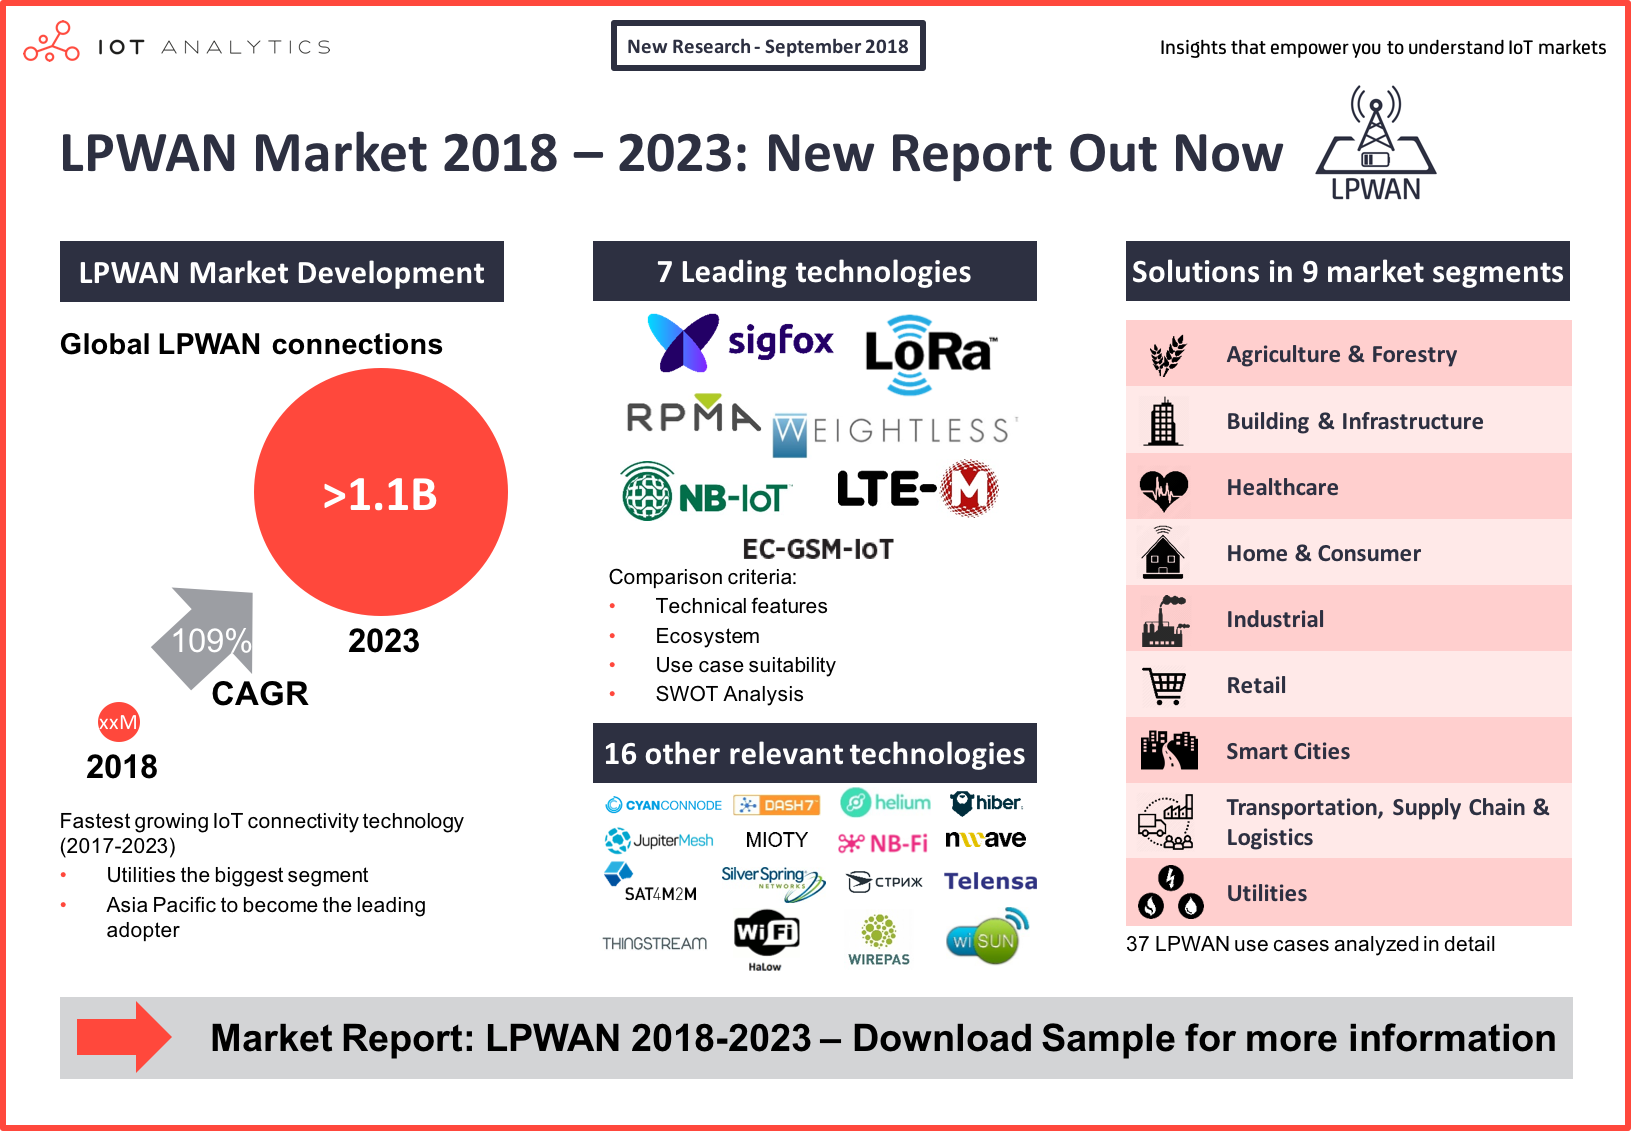 LPWAN Market 2018-2023 New Report